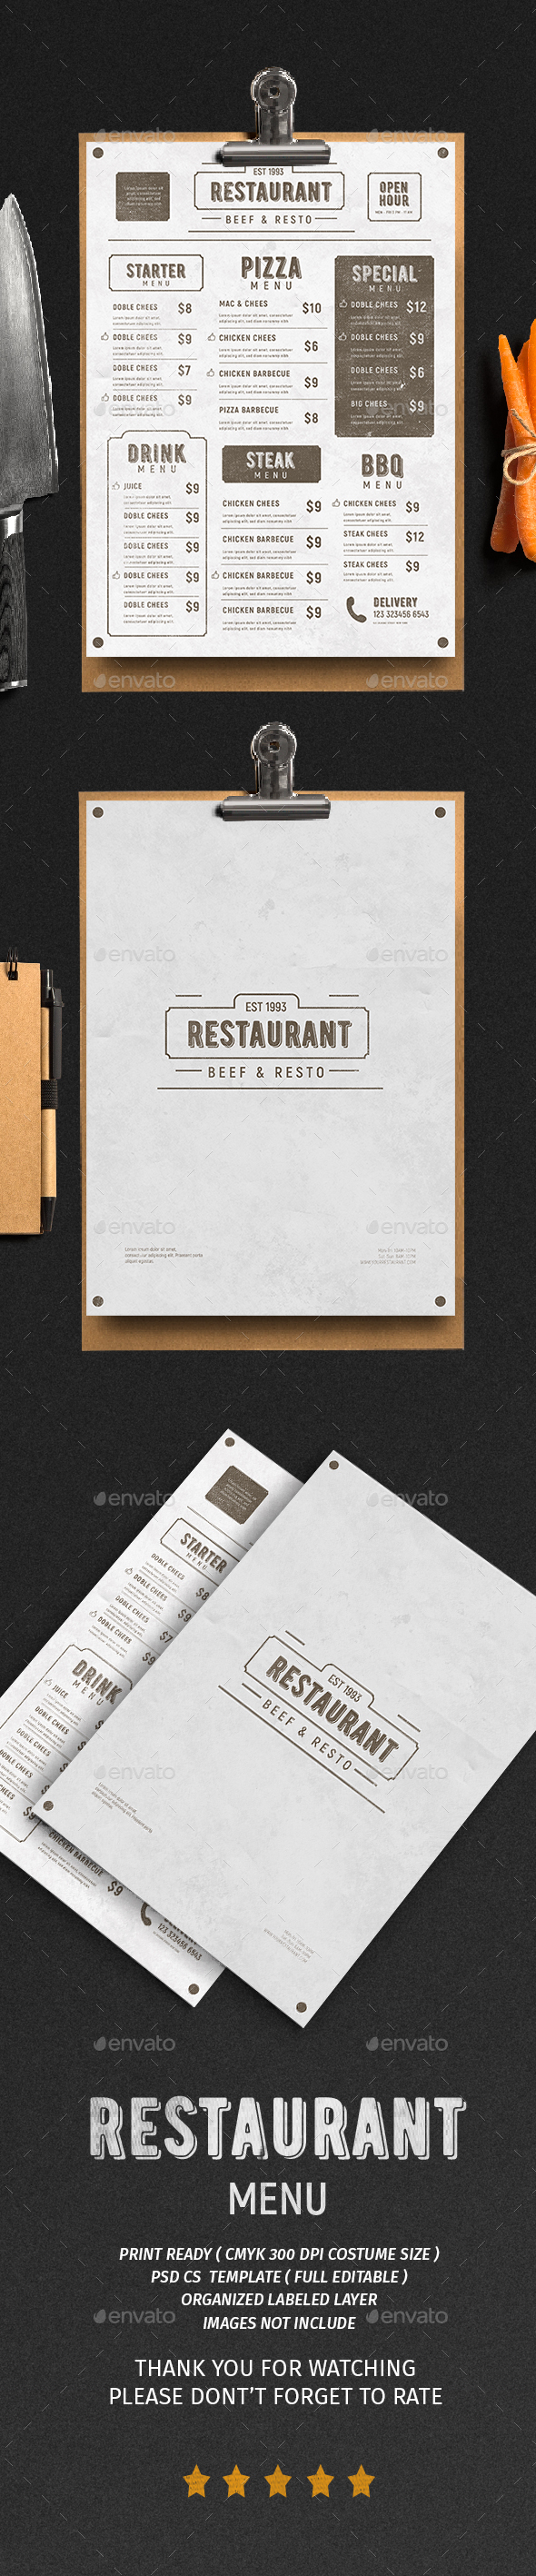 Vintage Menu Vol. 3 - Food Menus Print Templates